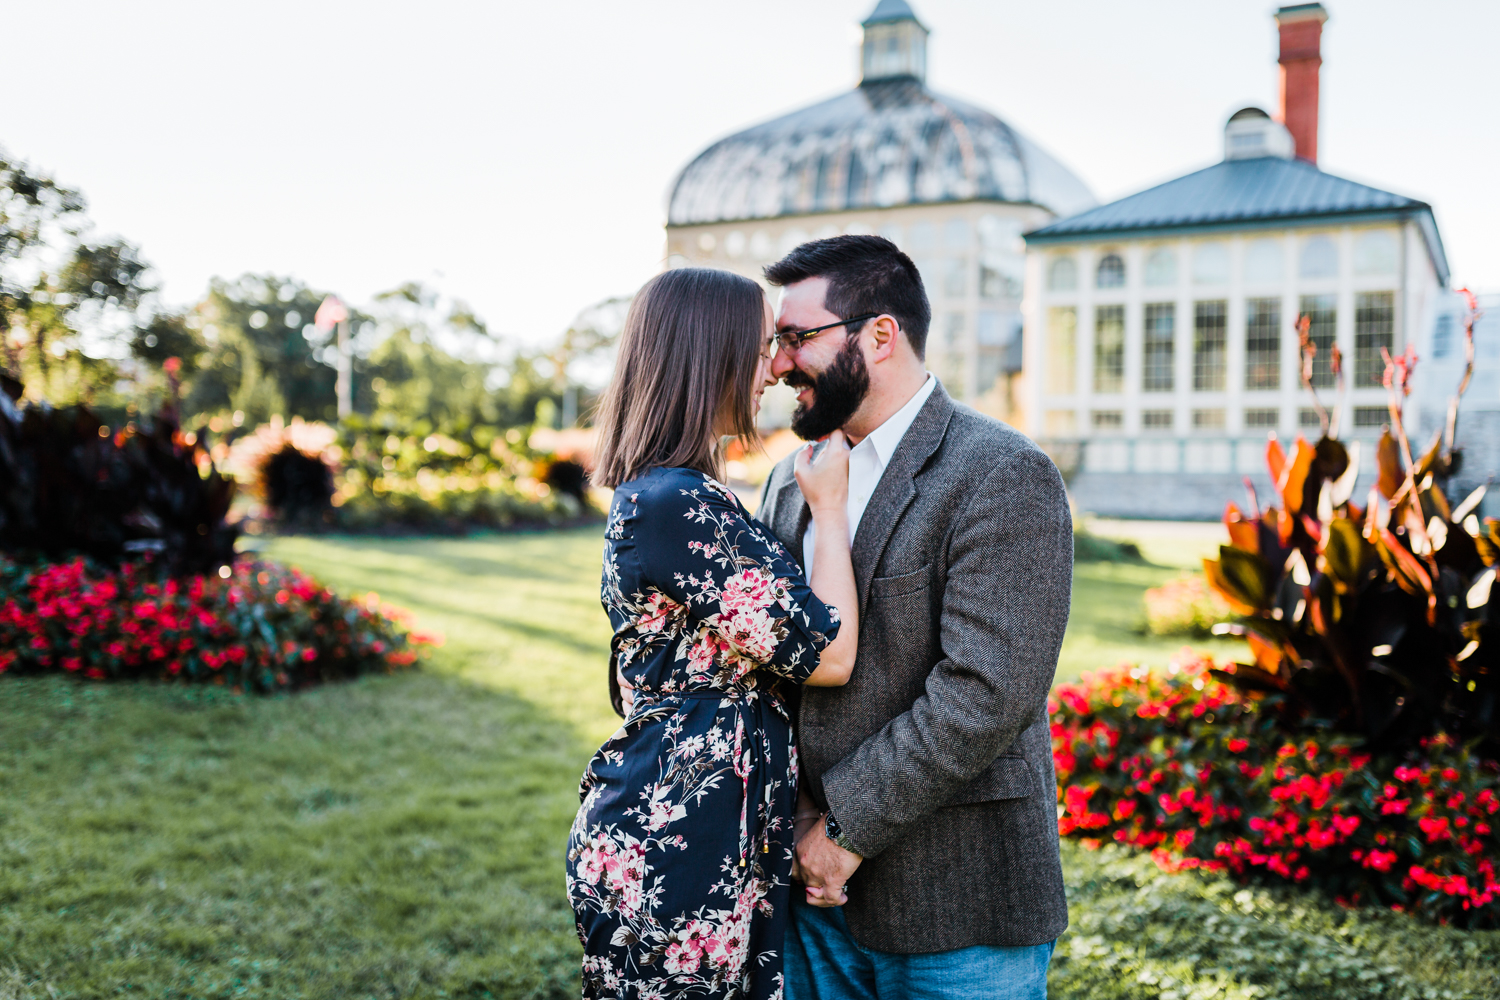 Engagement session at Rawlings Conservatory in Baltimore Maryland - best photographer in MD